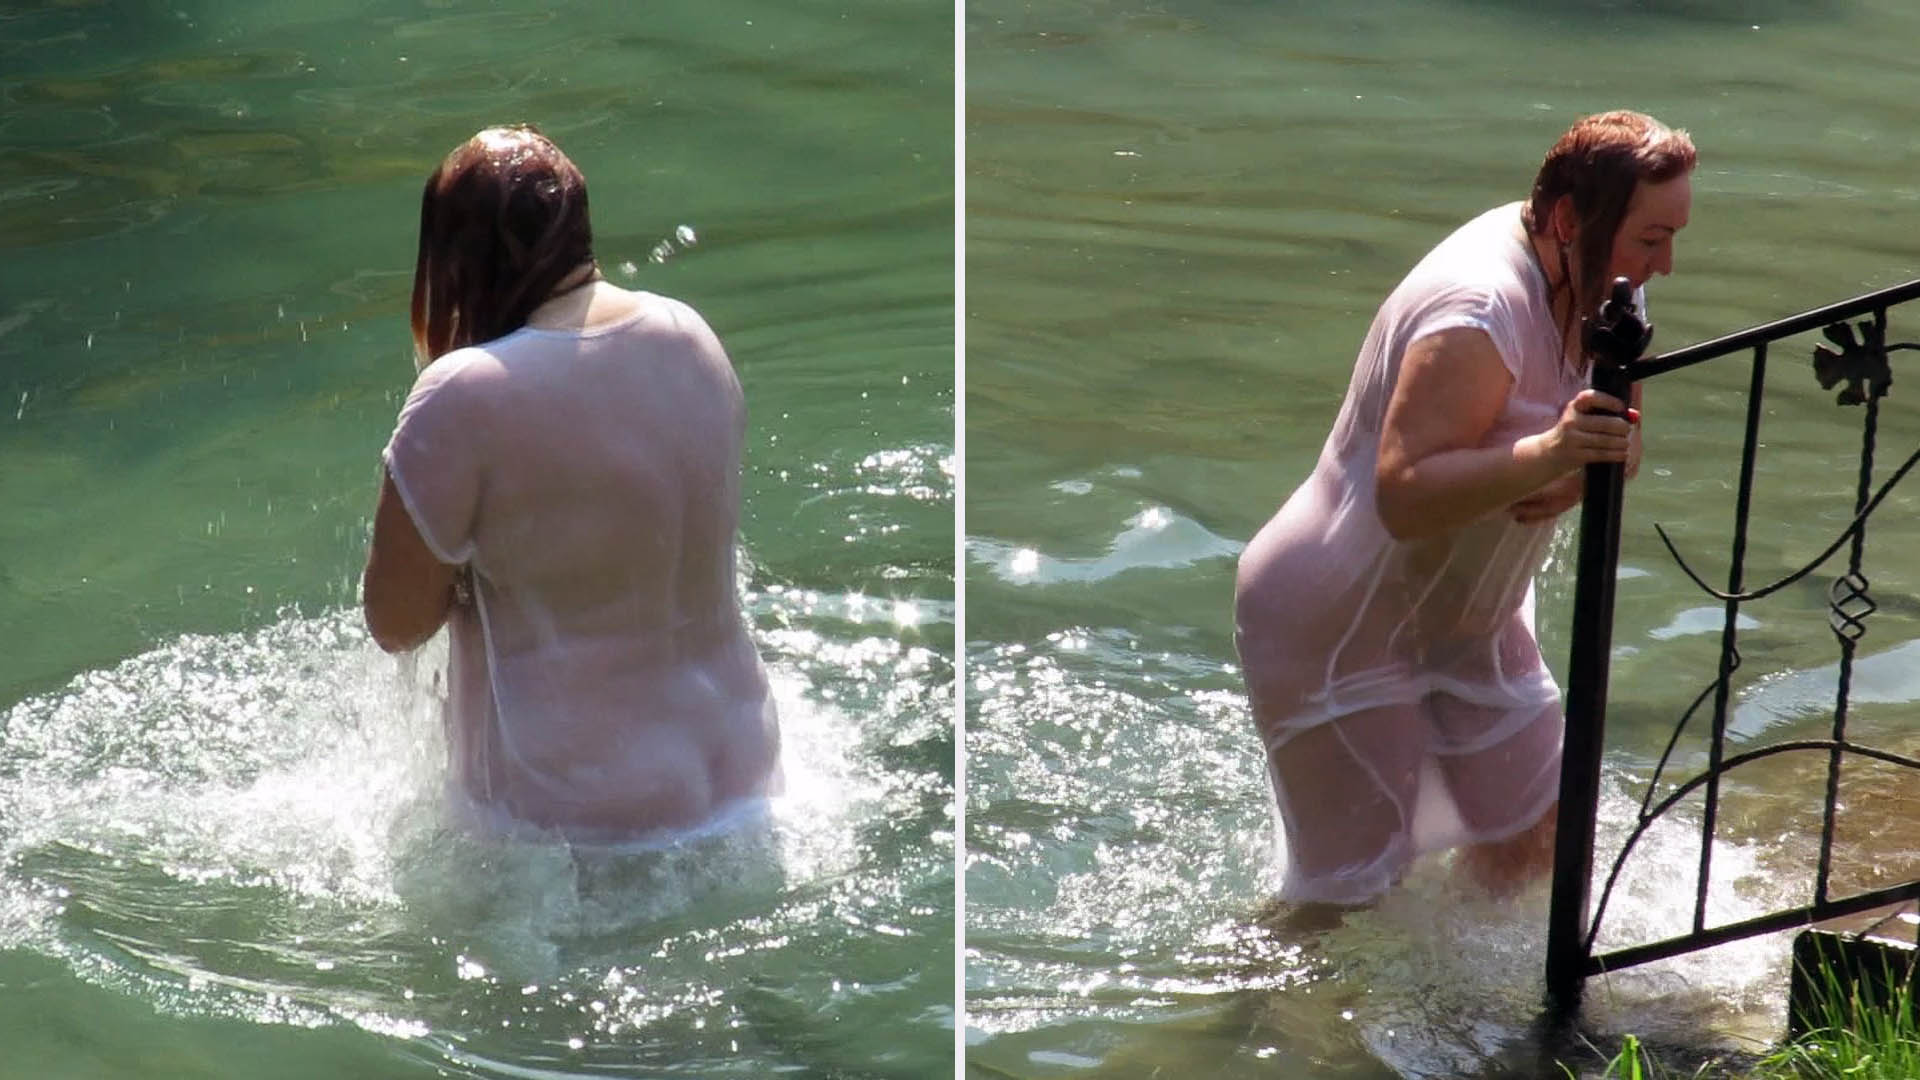 She plunges into cold water